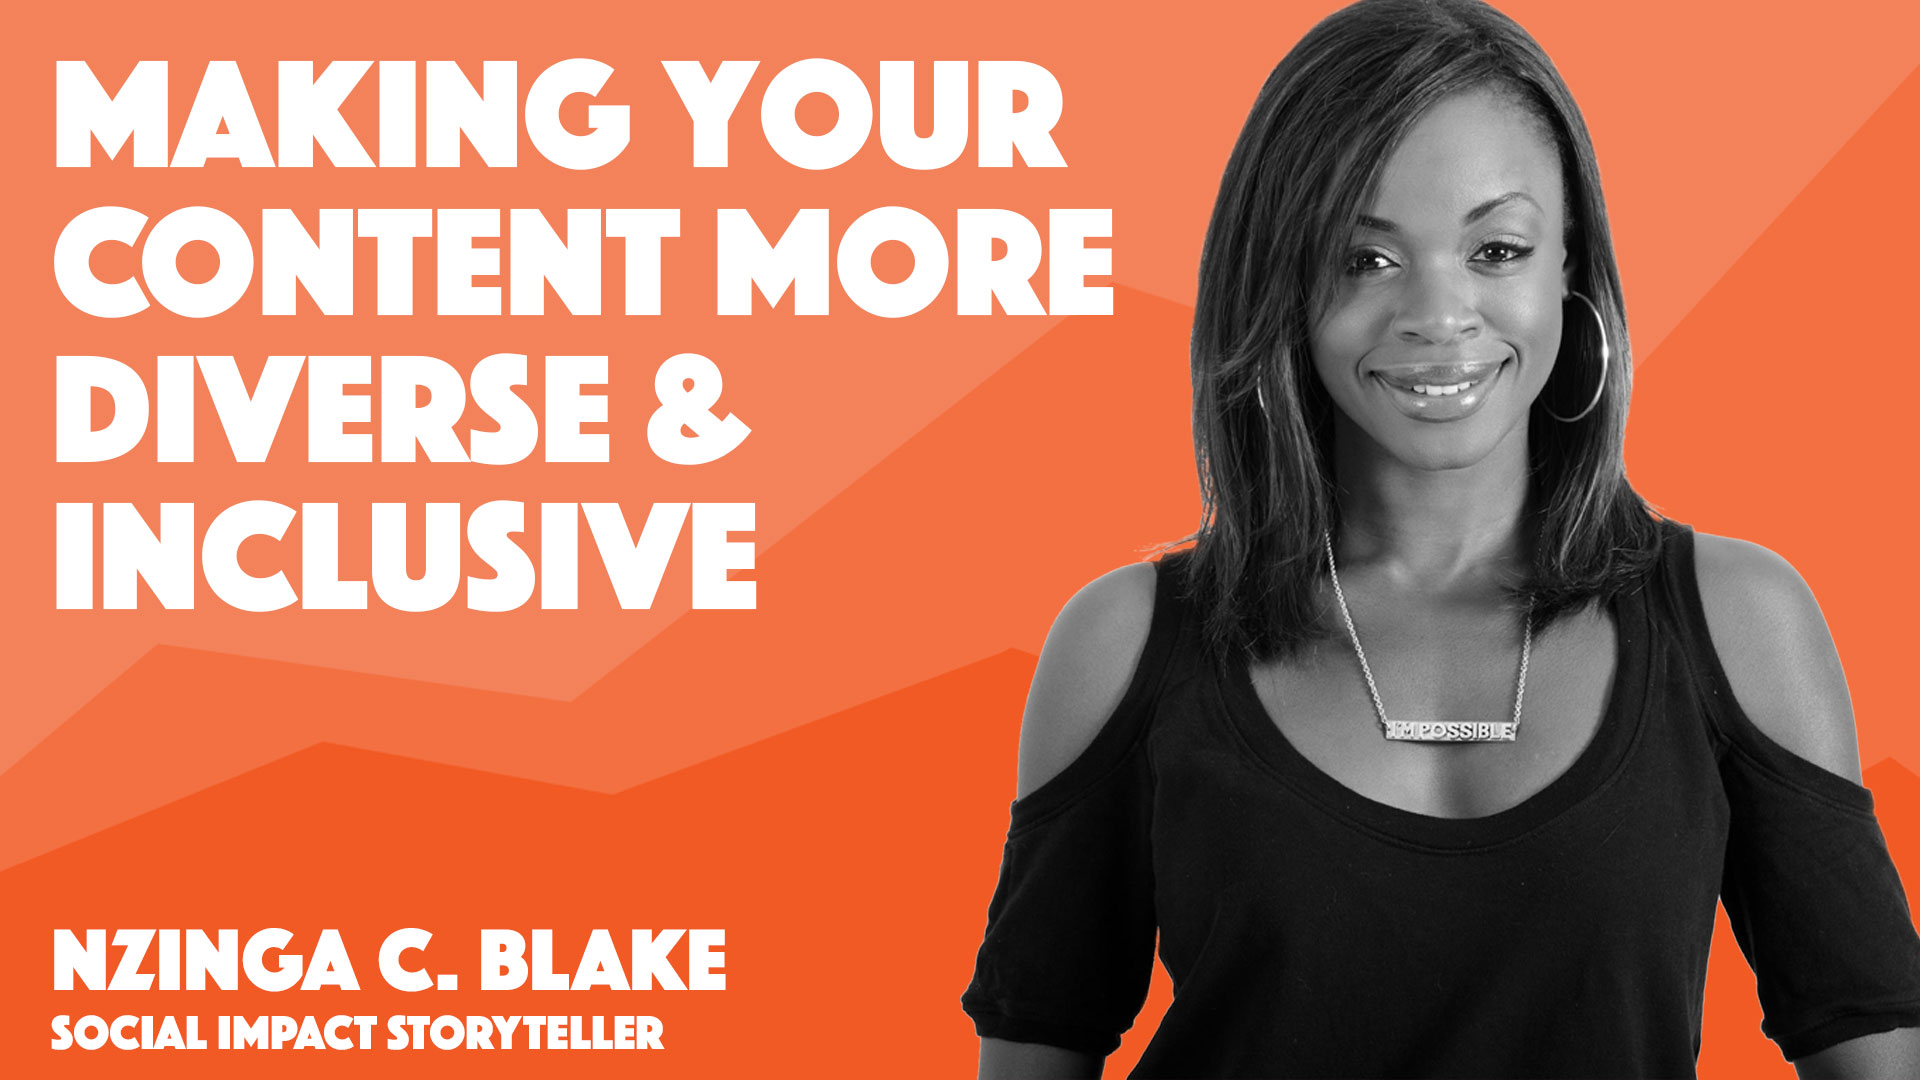 Peak Content Summit 2020 – How to Make Diverse & Inclusive Content